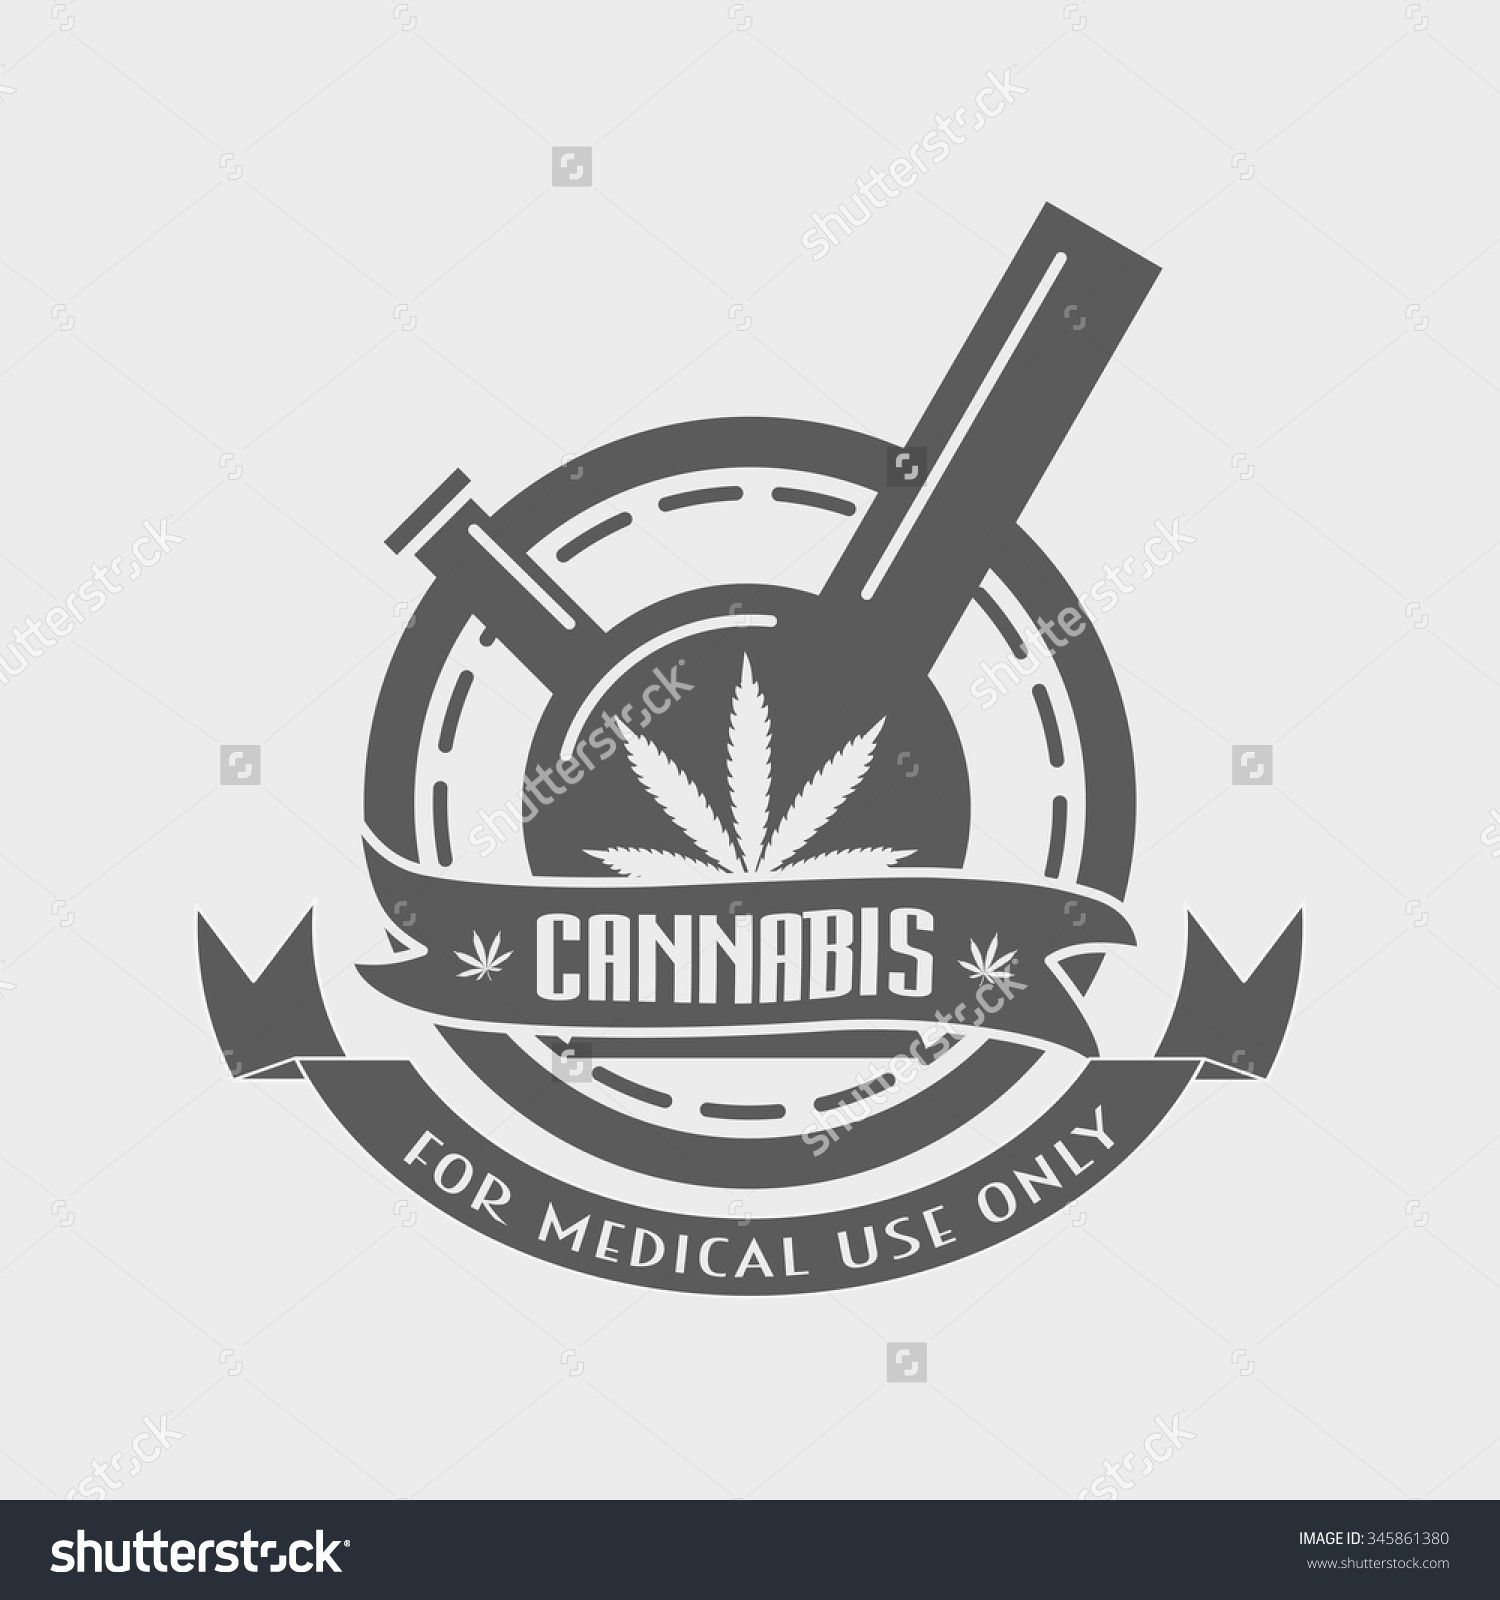 Weed pipe clipart google search the movement pinterest weed weed pipe clipart google search biocorpaavc Choice Image